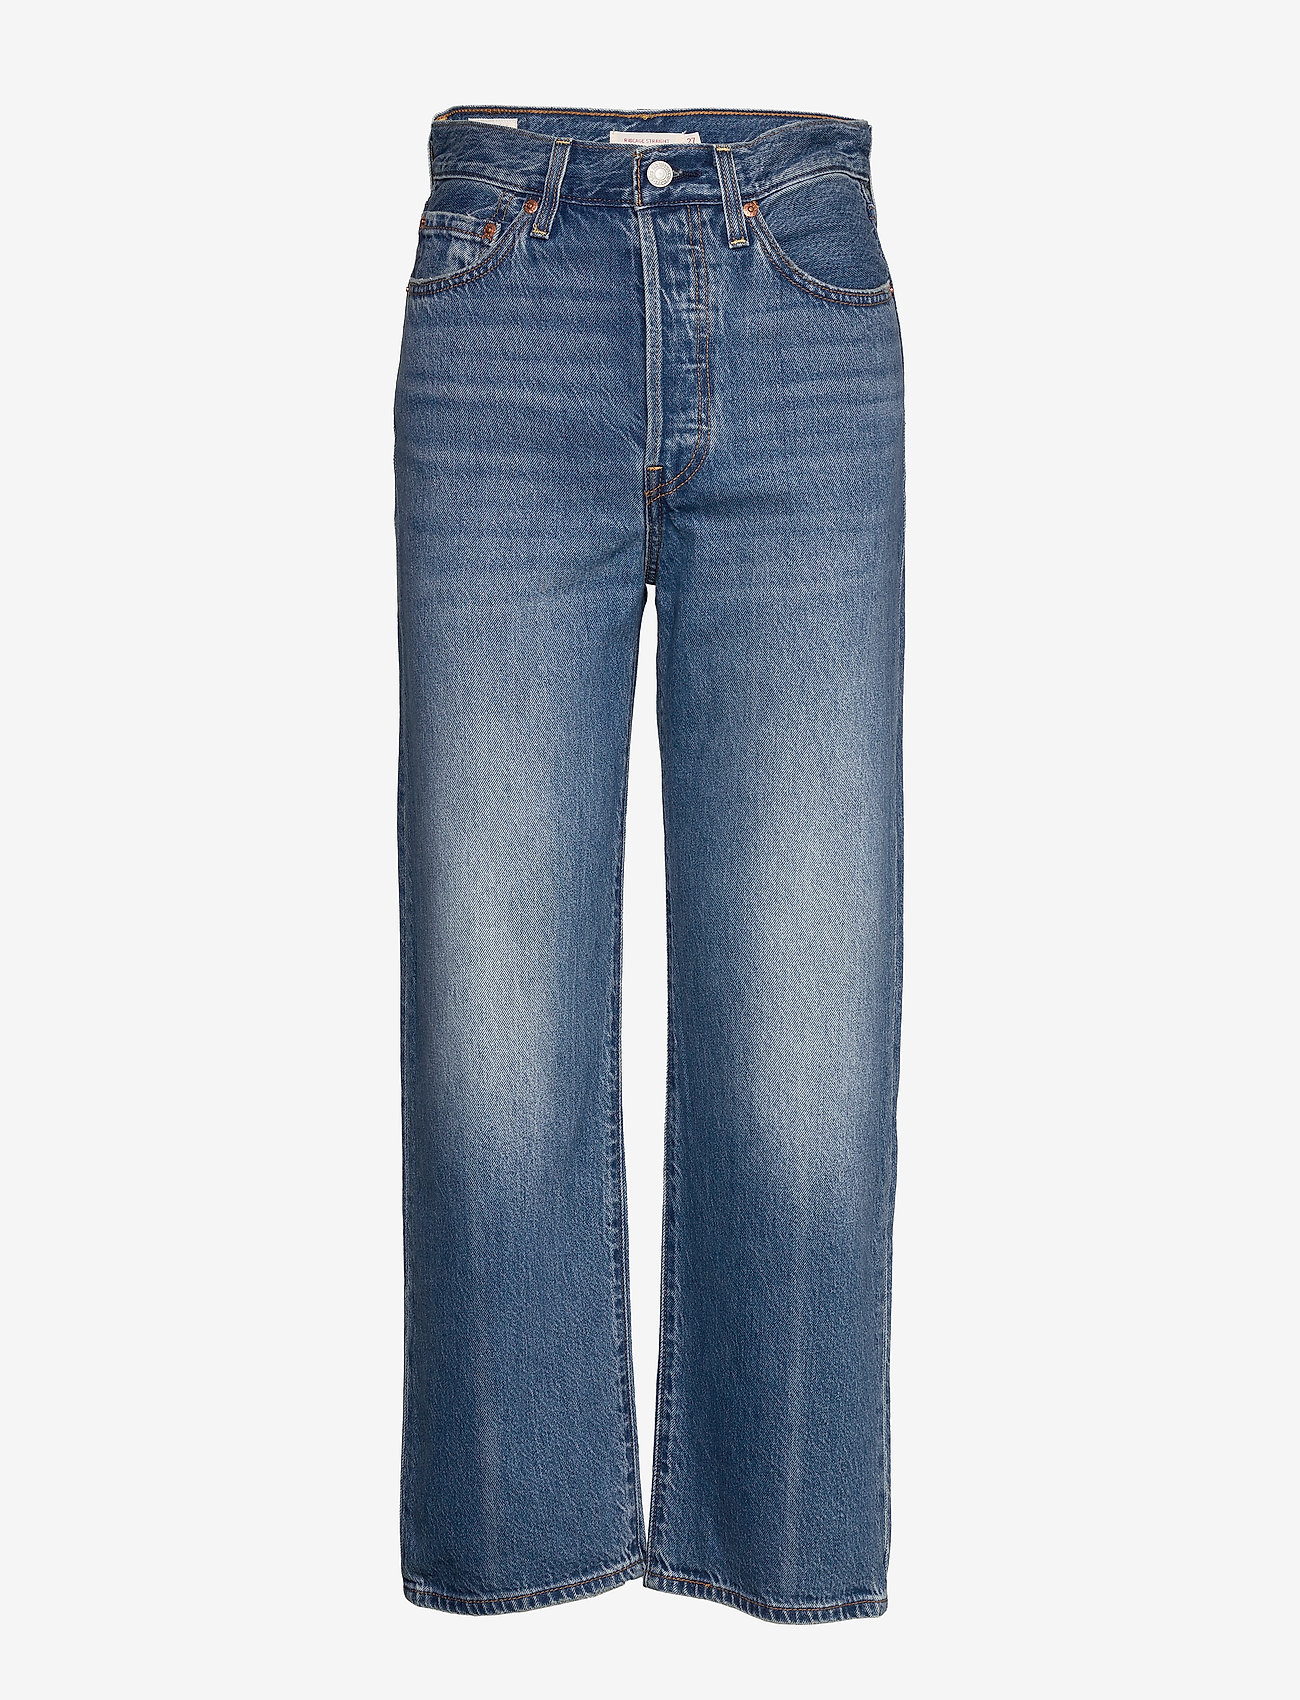 LEVI´S Women - RIBCAGE STRAIGHT ANKLE AT THE - brede jeans - med indigo - worn in - 0